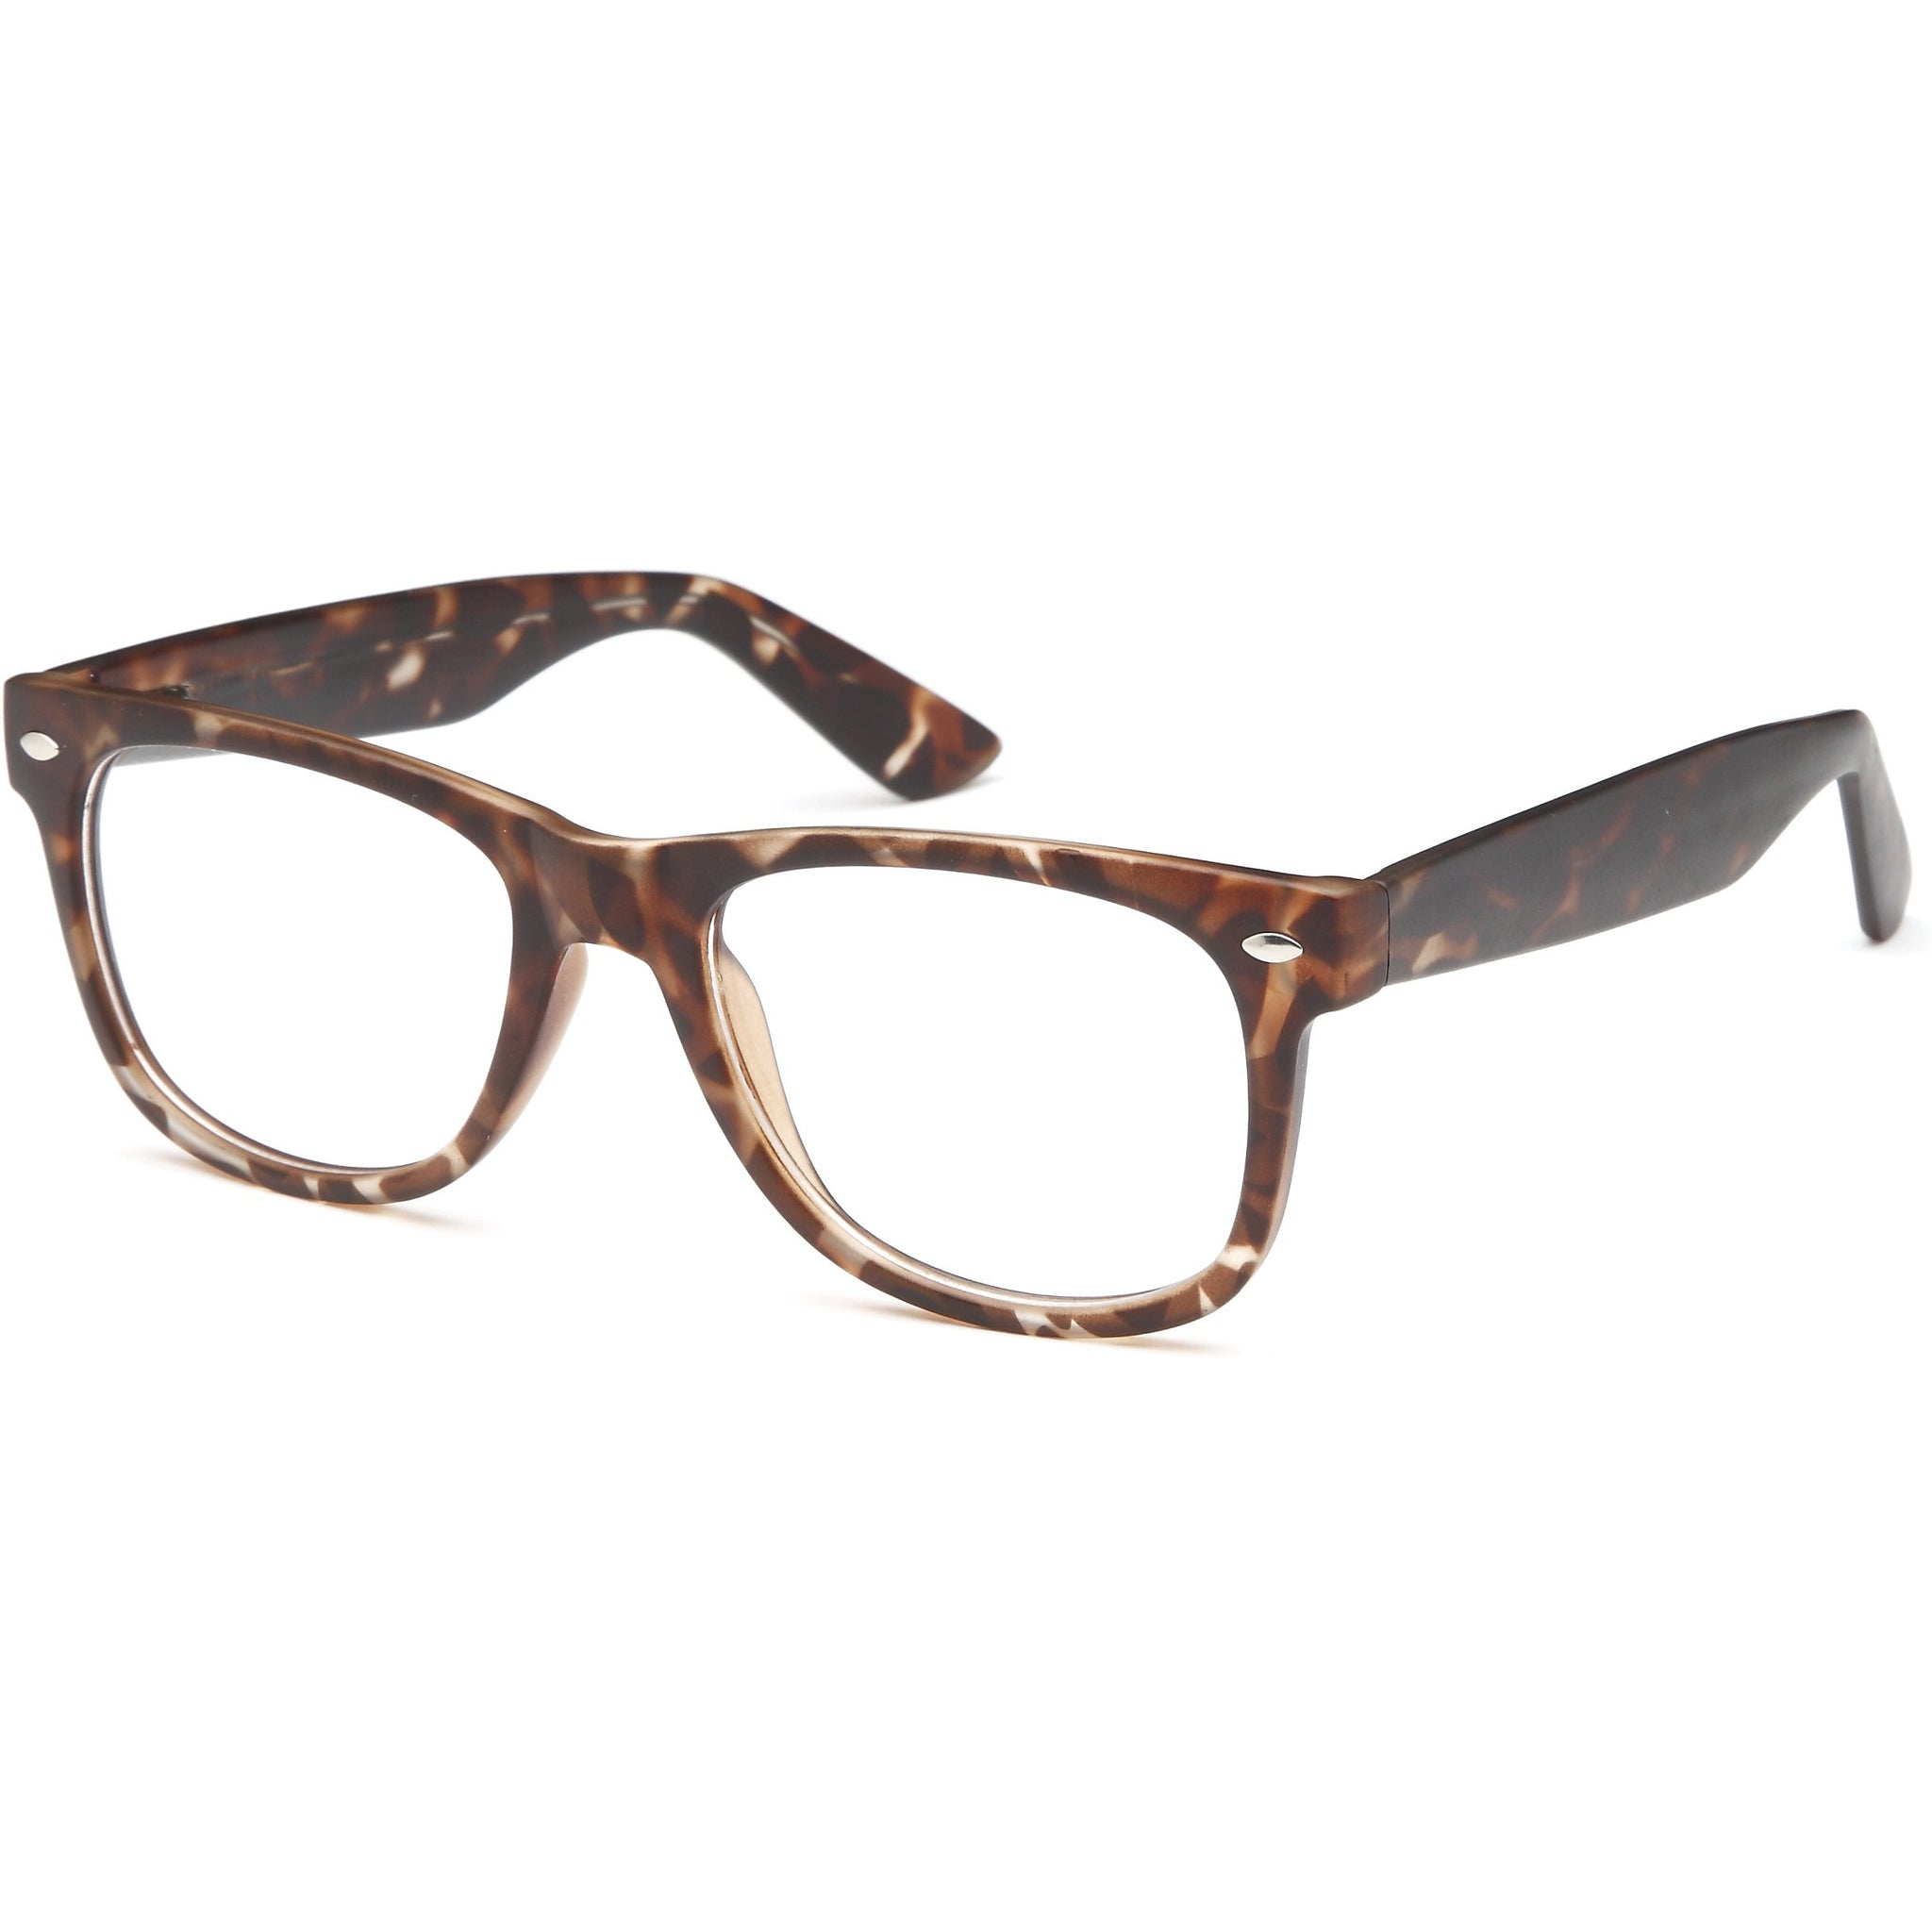 Shoreditch by The Square Mile Prescription Eyeglasses